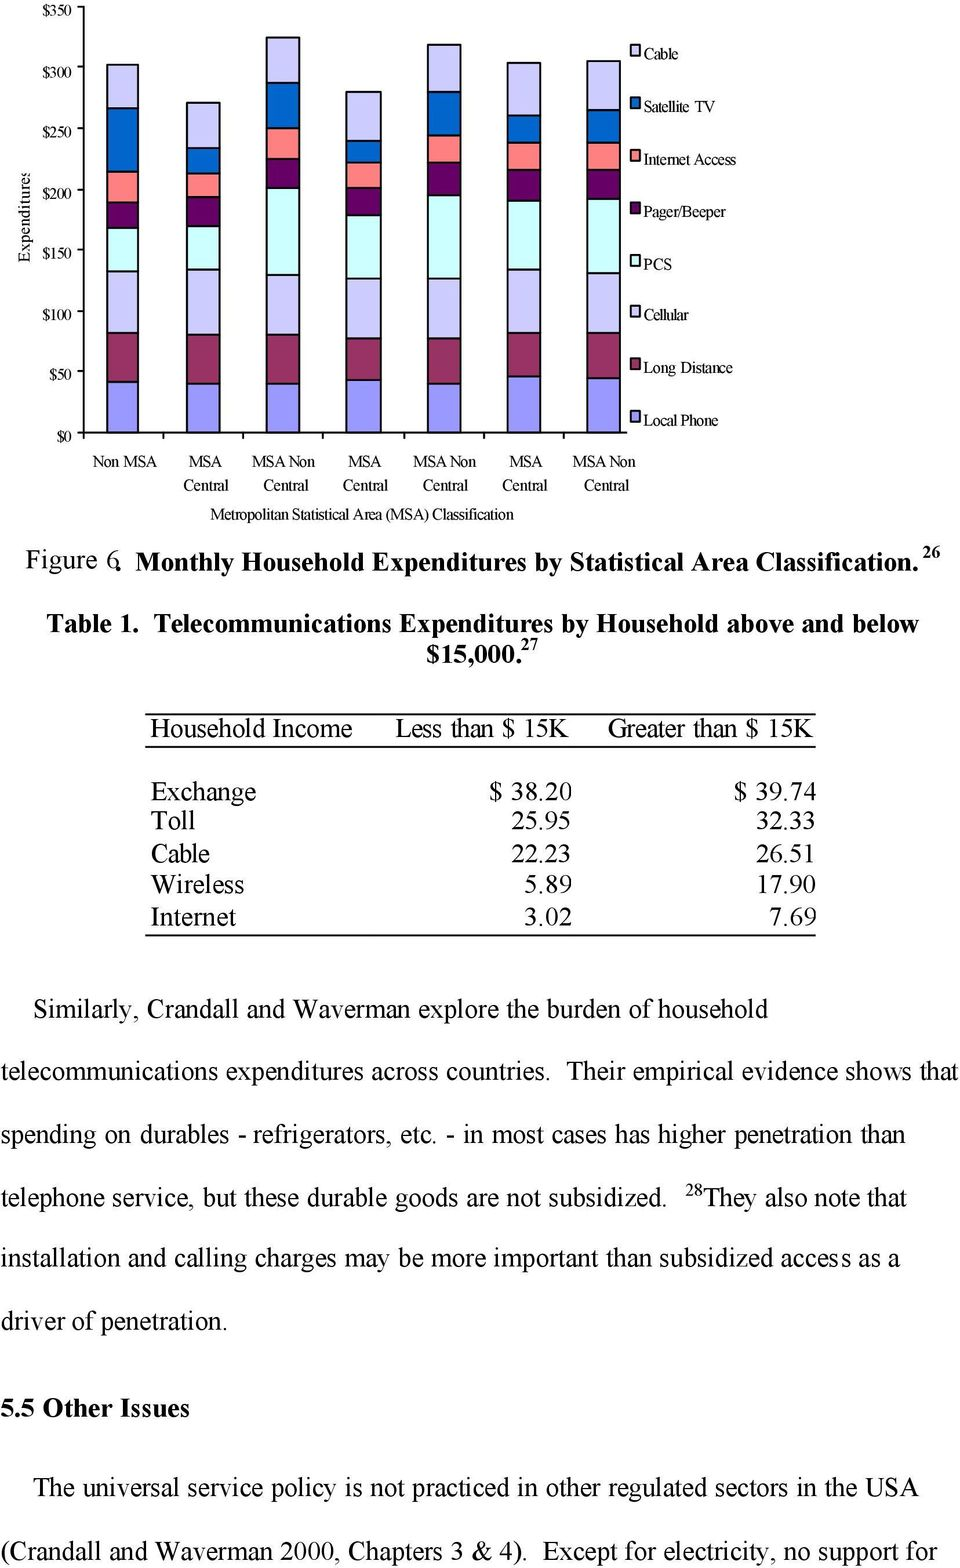 Telecommunications Expenditures by Household above and below $15,000. 27 Household Income Less than $ 15K Greater than $ 15K Exchange $ 38.20 $ 39.74 Toll 25.95 32.33 Cable 22.23 26.51 Wireless 5.